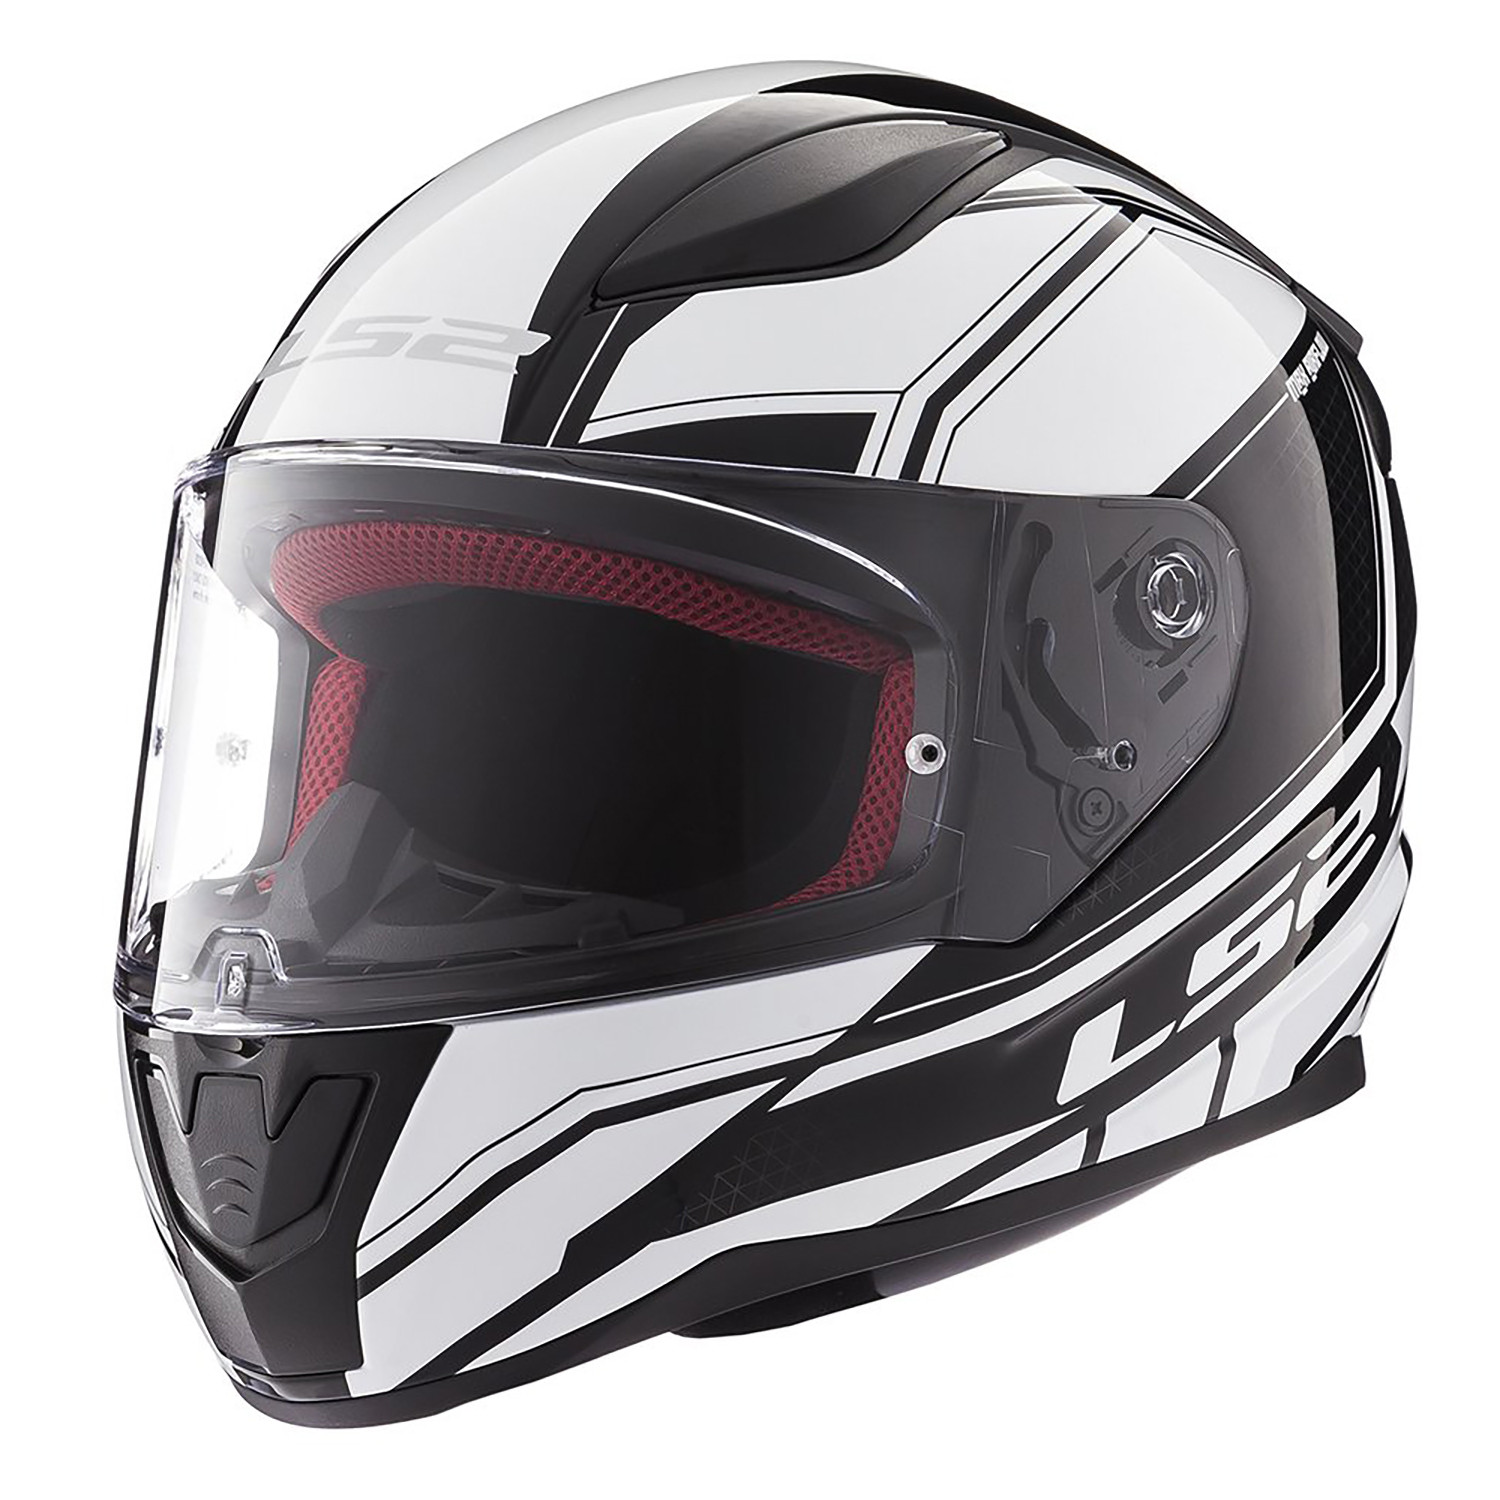 Casco Integral LS2 FF 353 Rapid Infinity Blanco